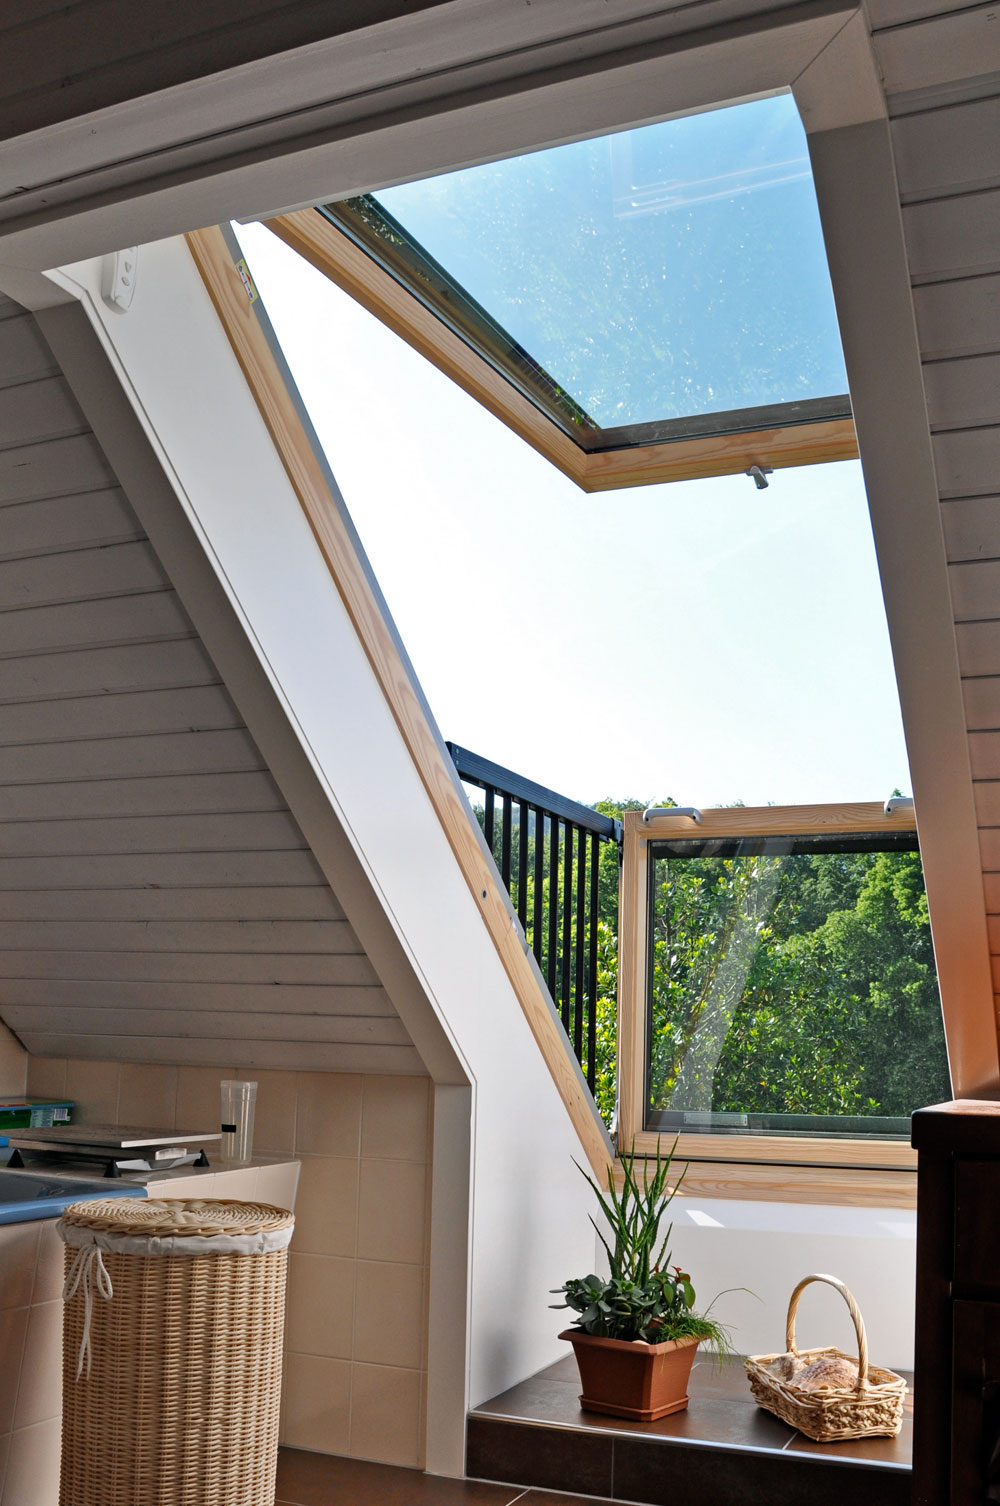 velux dachfenster rollo reparieren with velux dachfenster rollo reparieren velux fenster. Black Bedroom Furniture Sets. Home Design Ideas